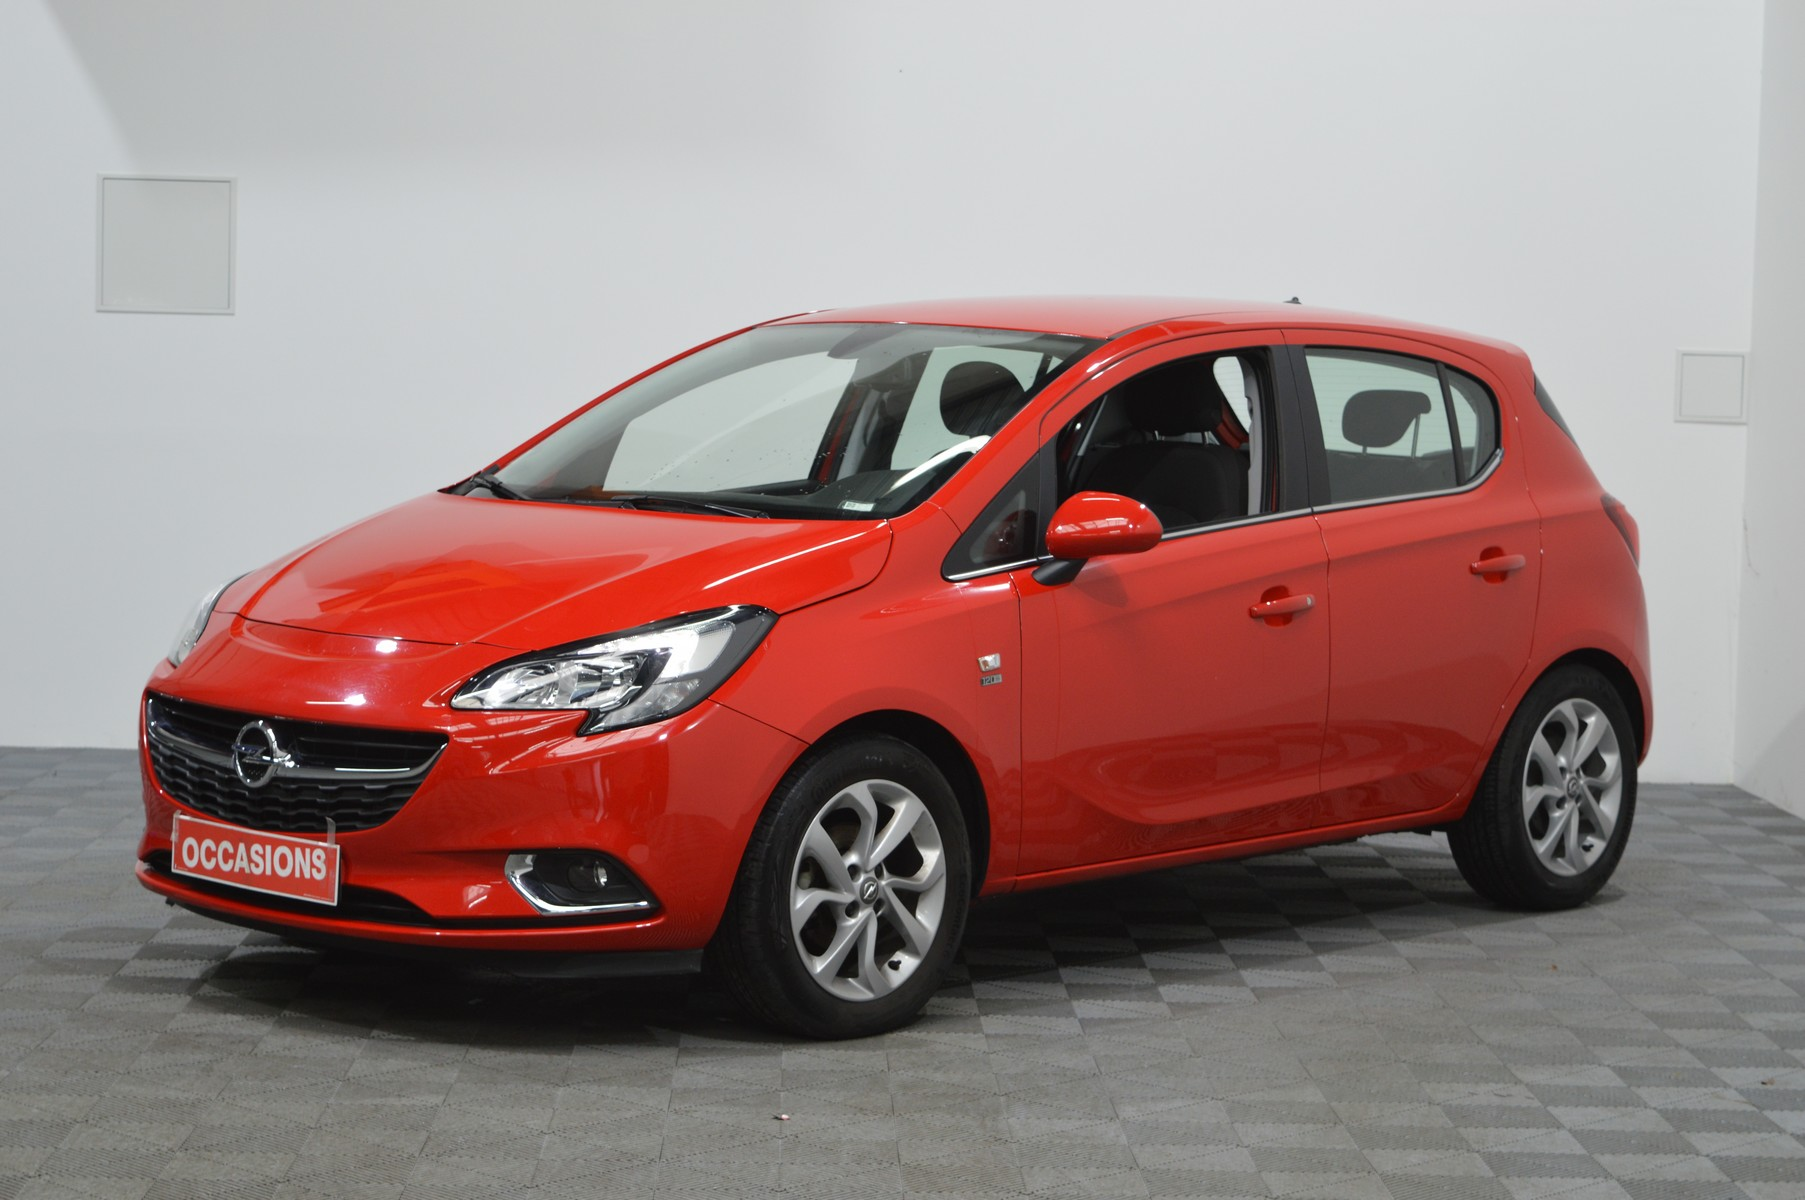 OPEL CORSA 1.4 90 ch Design 120 ans d'occasion